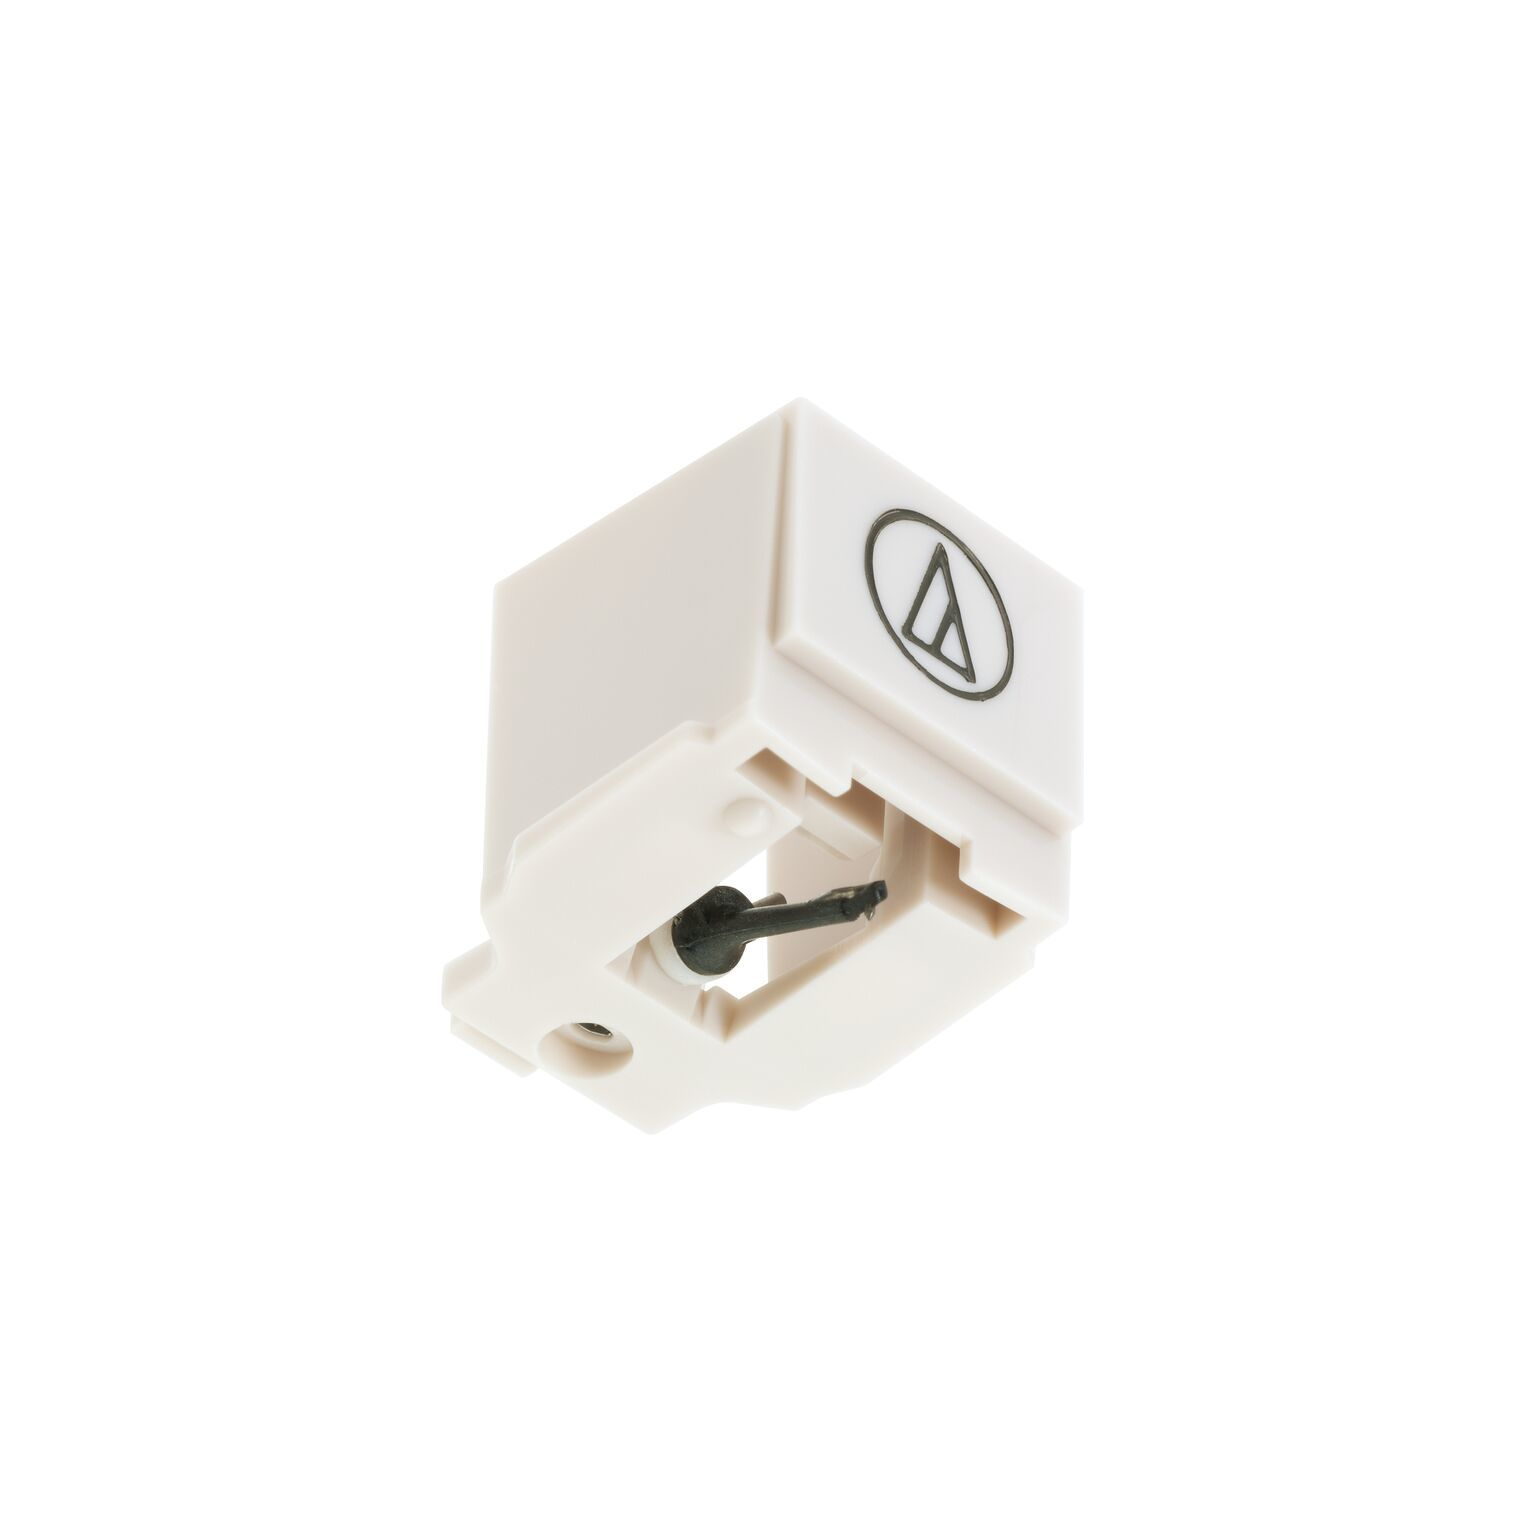 Stylus For All LP60 image